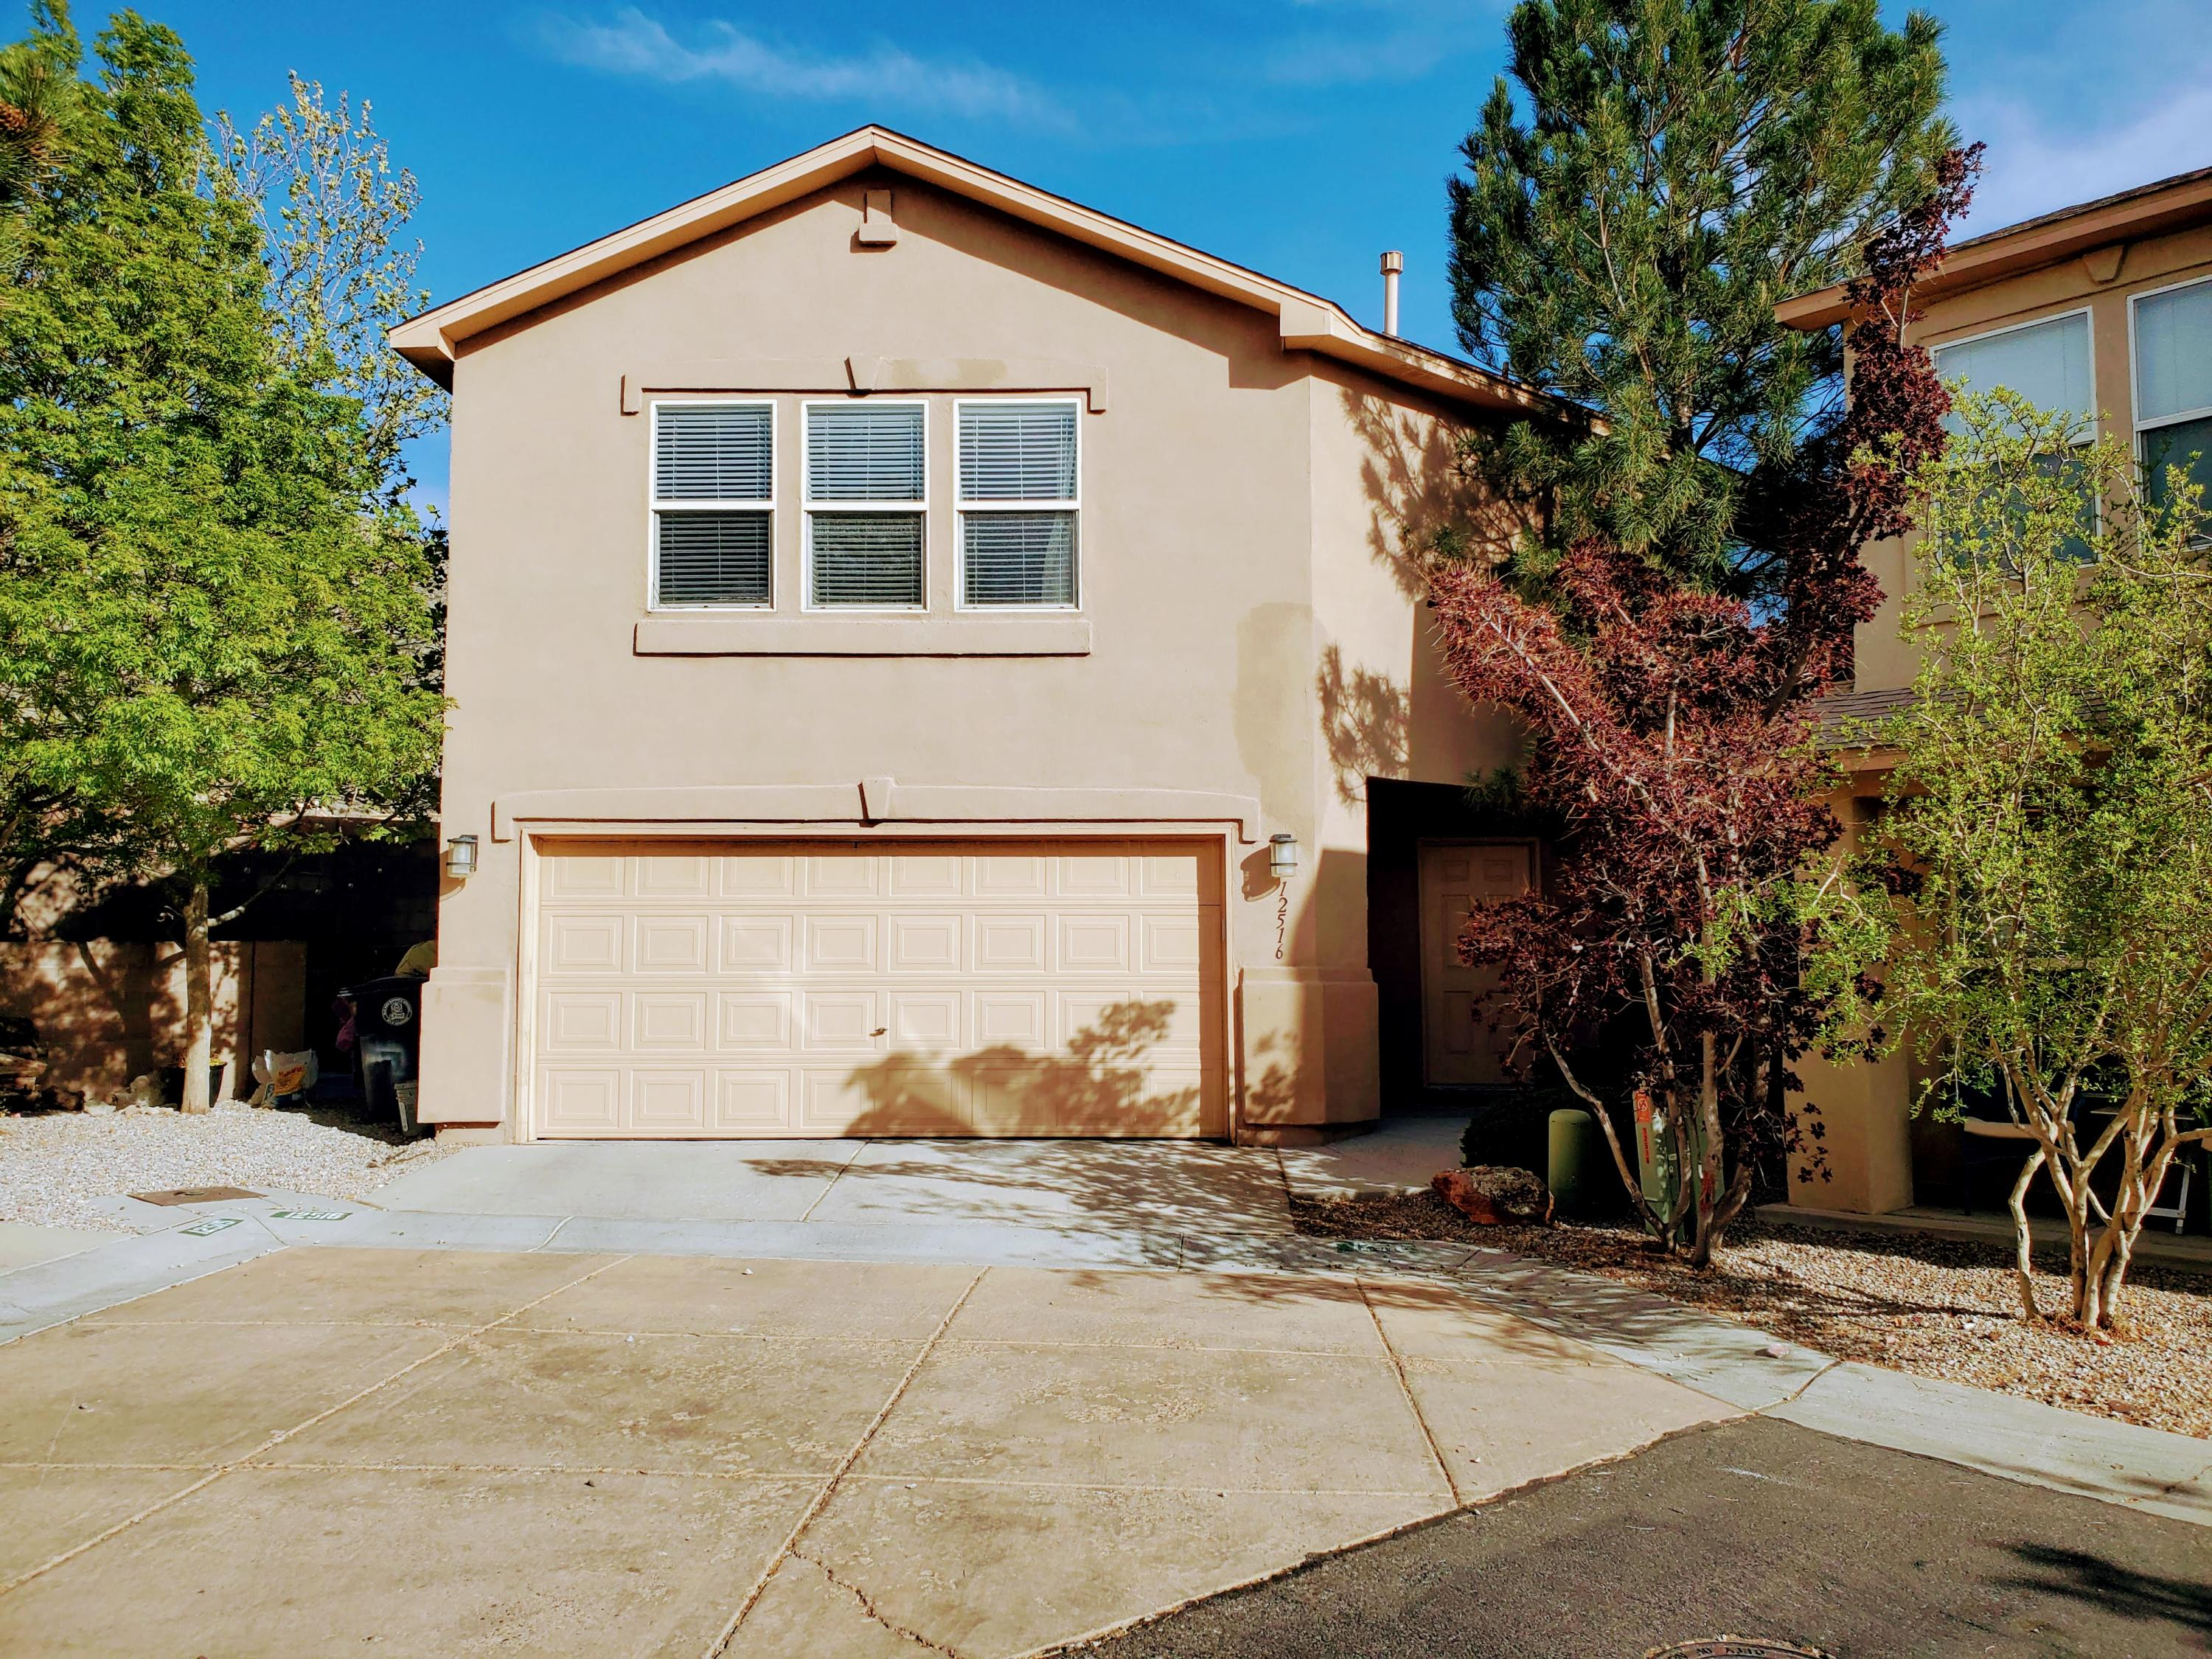 This cute, move-in ready home is located at the end of a cul-de-sac in the Foothills Tramway Highpoint area in a quiet neighborhood, with excellent public schools and is just minutes away from restaurants, shopping, breweries, and the foothill hiking trails. The backyard was recently upgraded with entertaining in mind. The spacious master bedroom features two walk-in closets and an upgraded walk-in shower. Main floor has an open plan including a kitchen and dining area, and a bright, comfortable living room. Top that off with a laundry room, with lots of storage, and a half bath, and you have the perfect setup. Upstairs there's a spacious loft, the master bedroom and bath, two more good sized bedroom and a full bathroom. Last, but not least, the home sports an attached two car garage